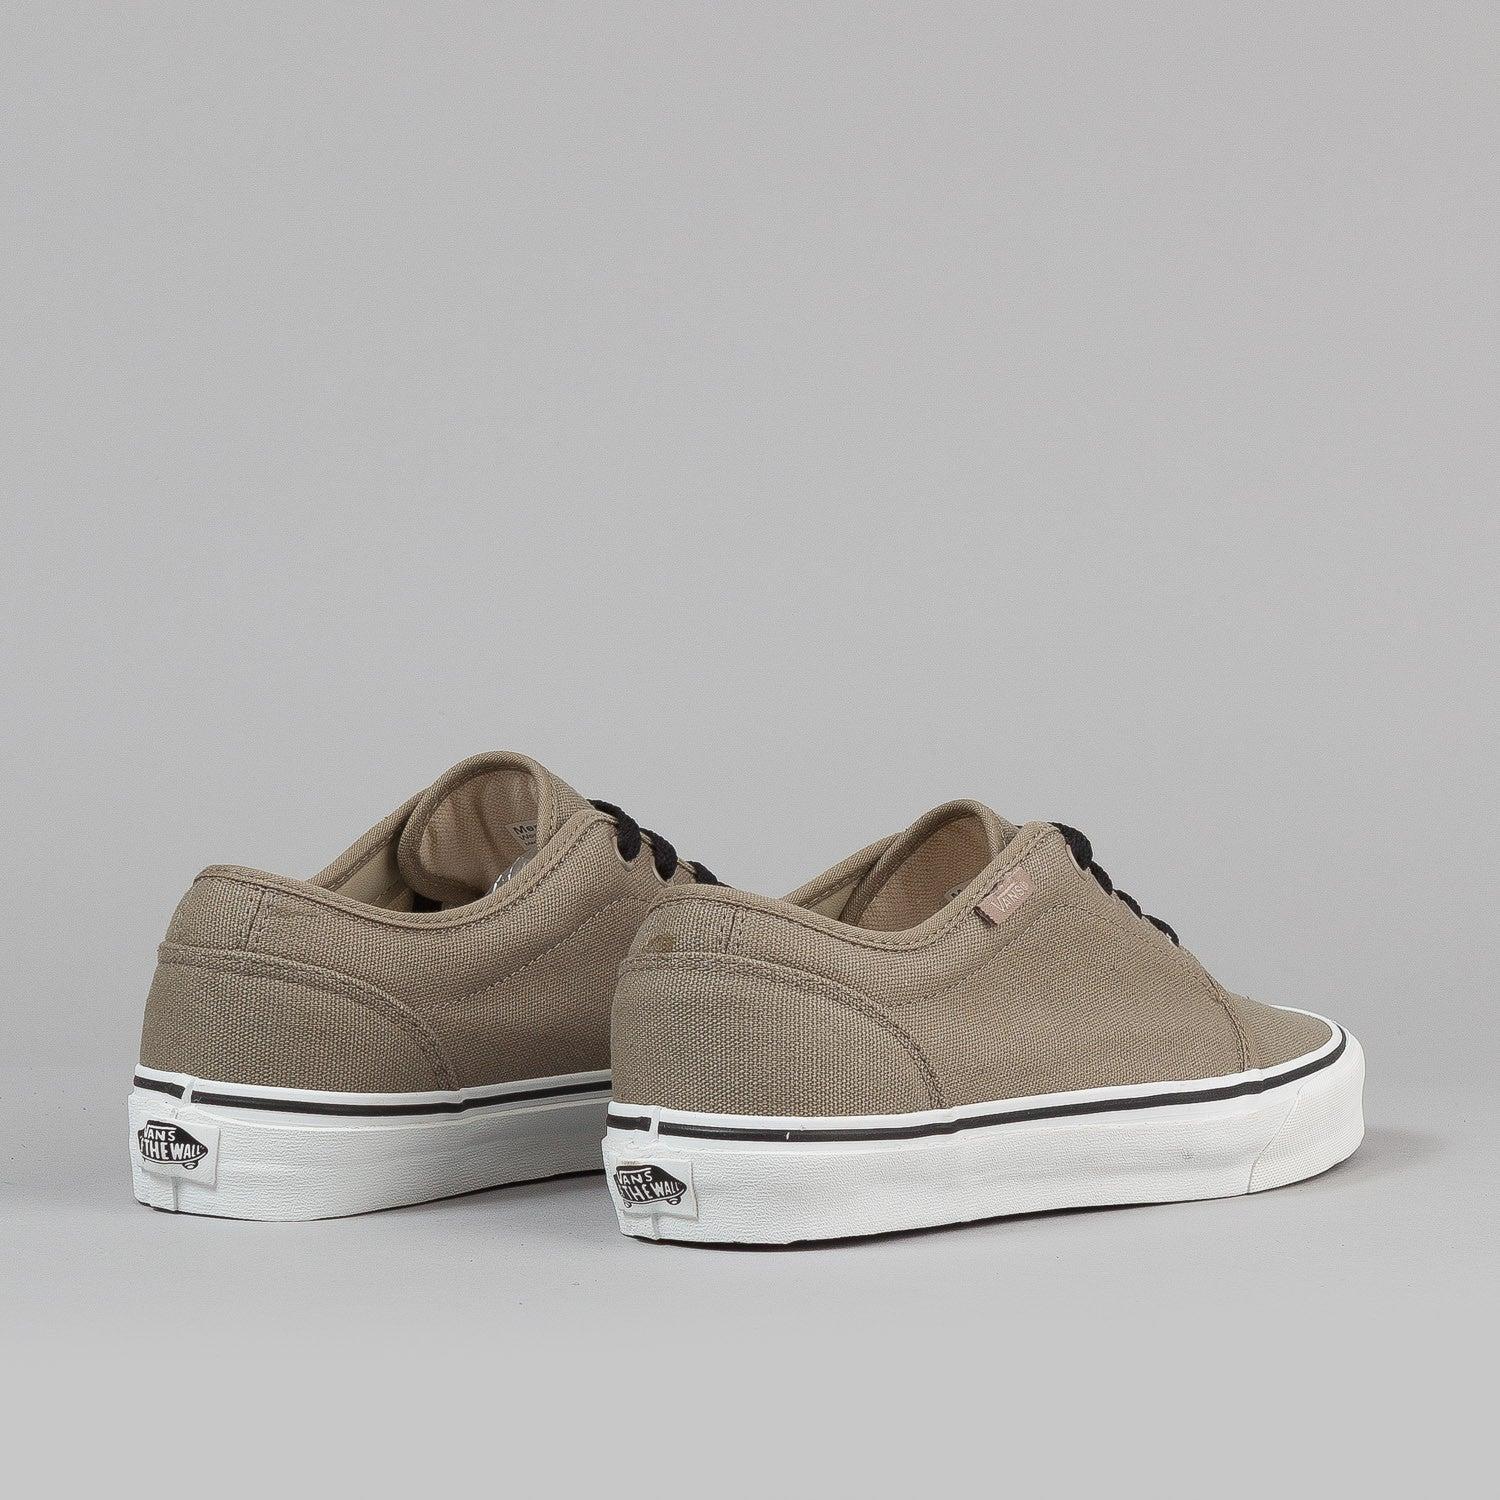 Vans 106 Vulc Shoes - (Canvas) Dune / Black